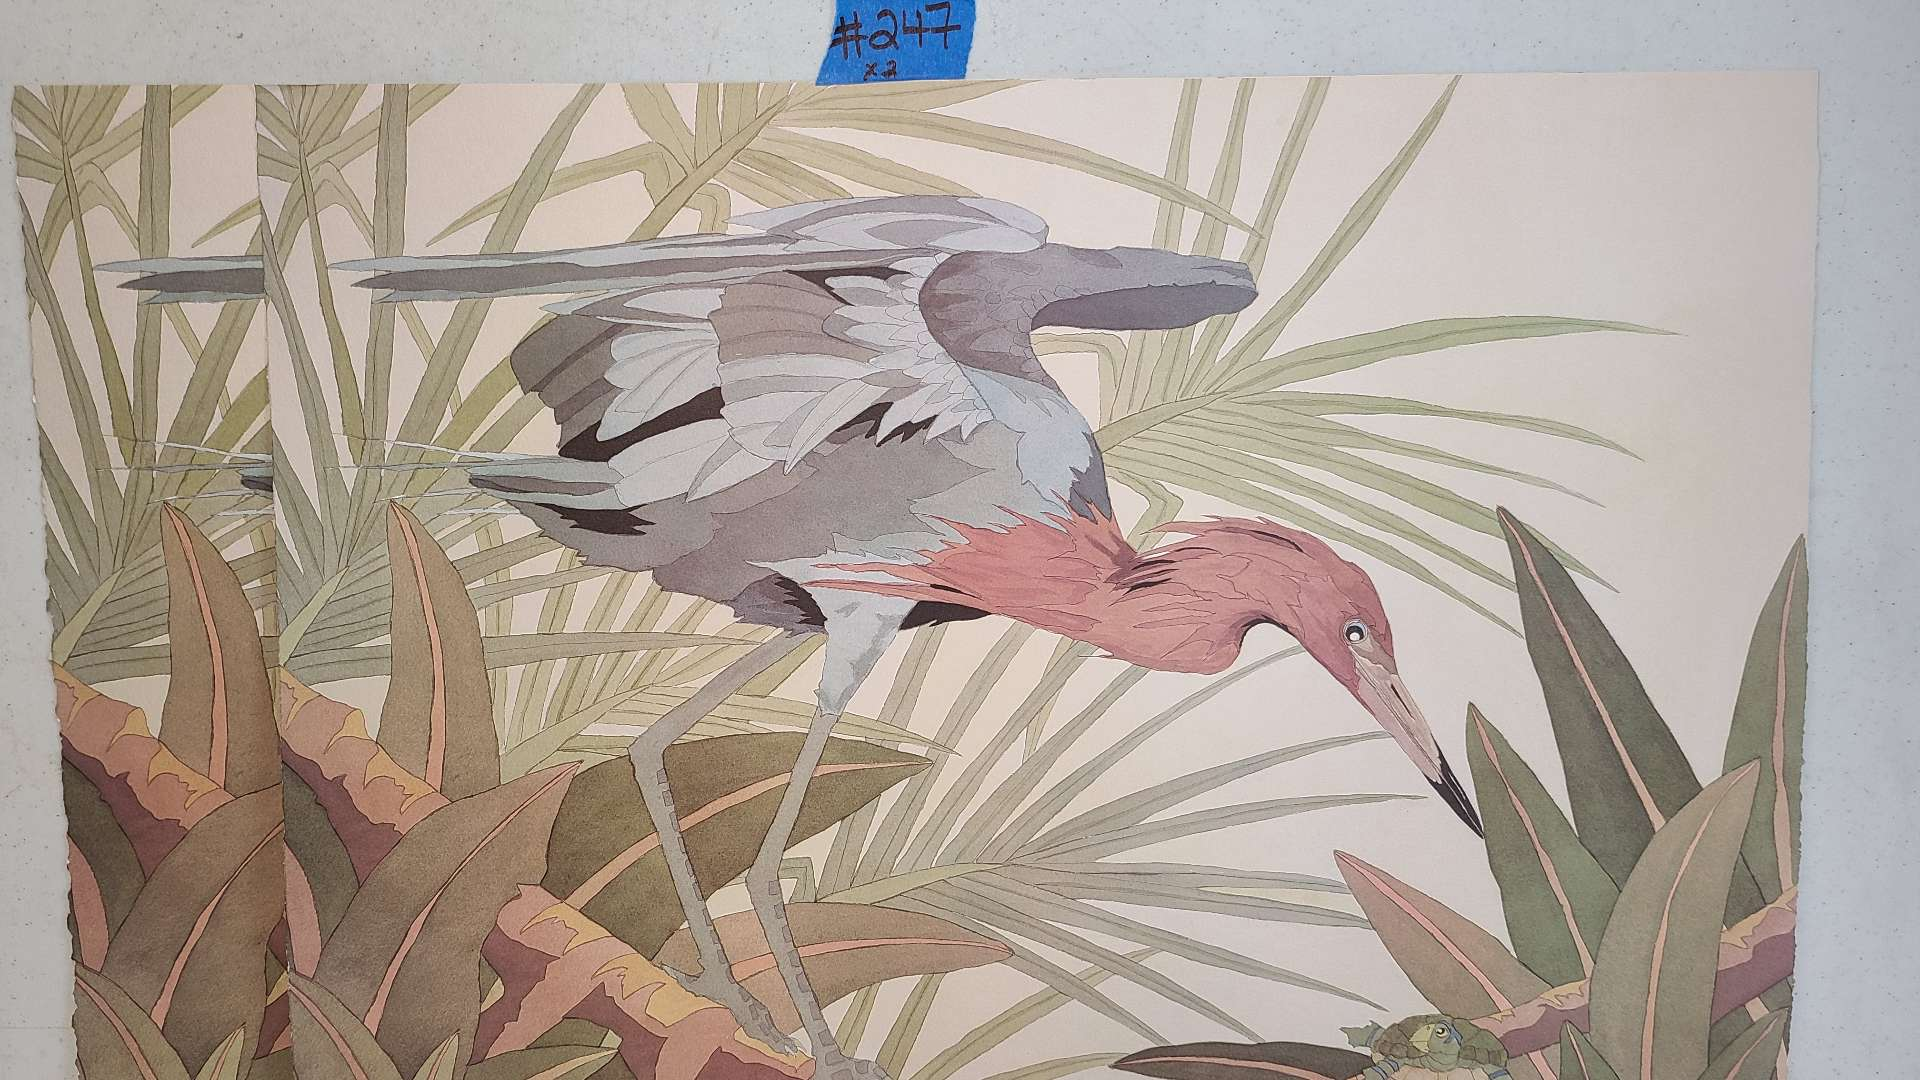 Lot # 247 Signed & Numbered Stork Lithograph (X2)